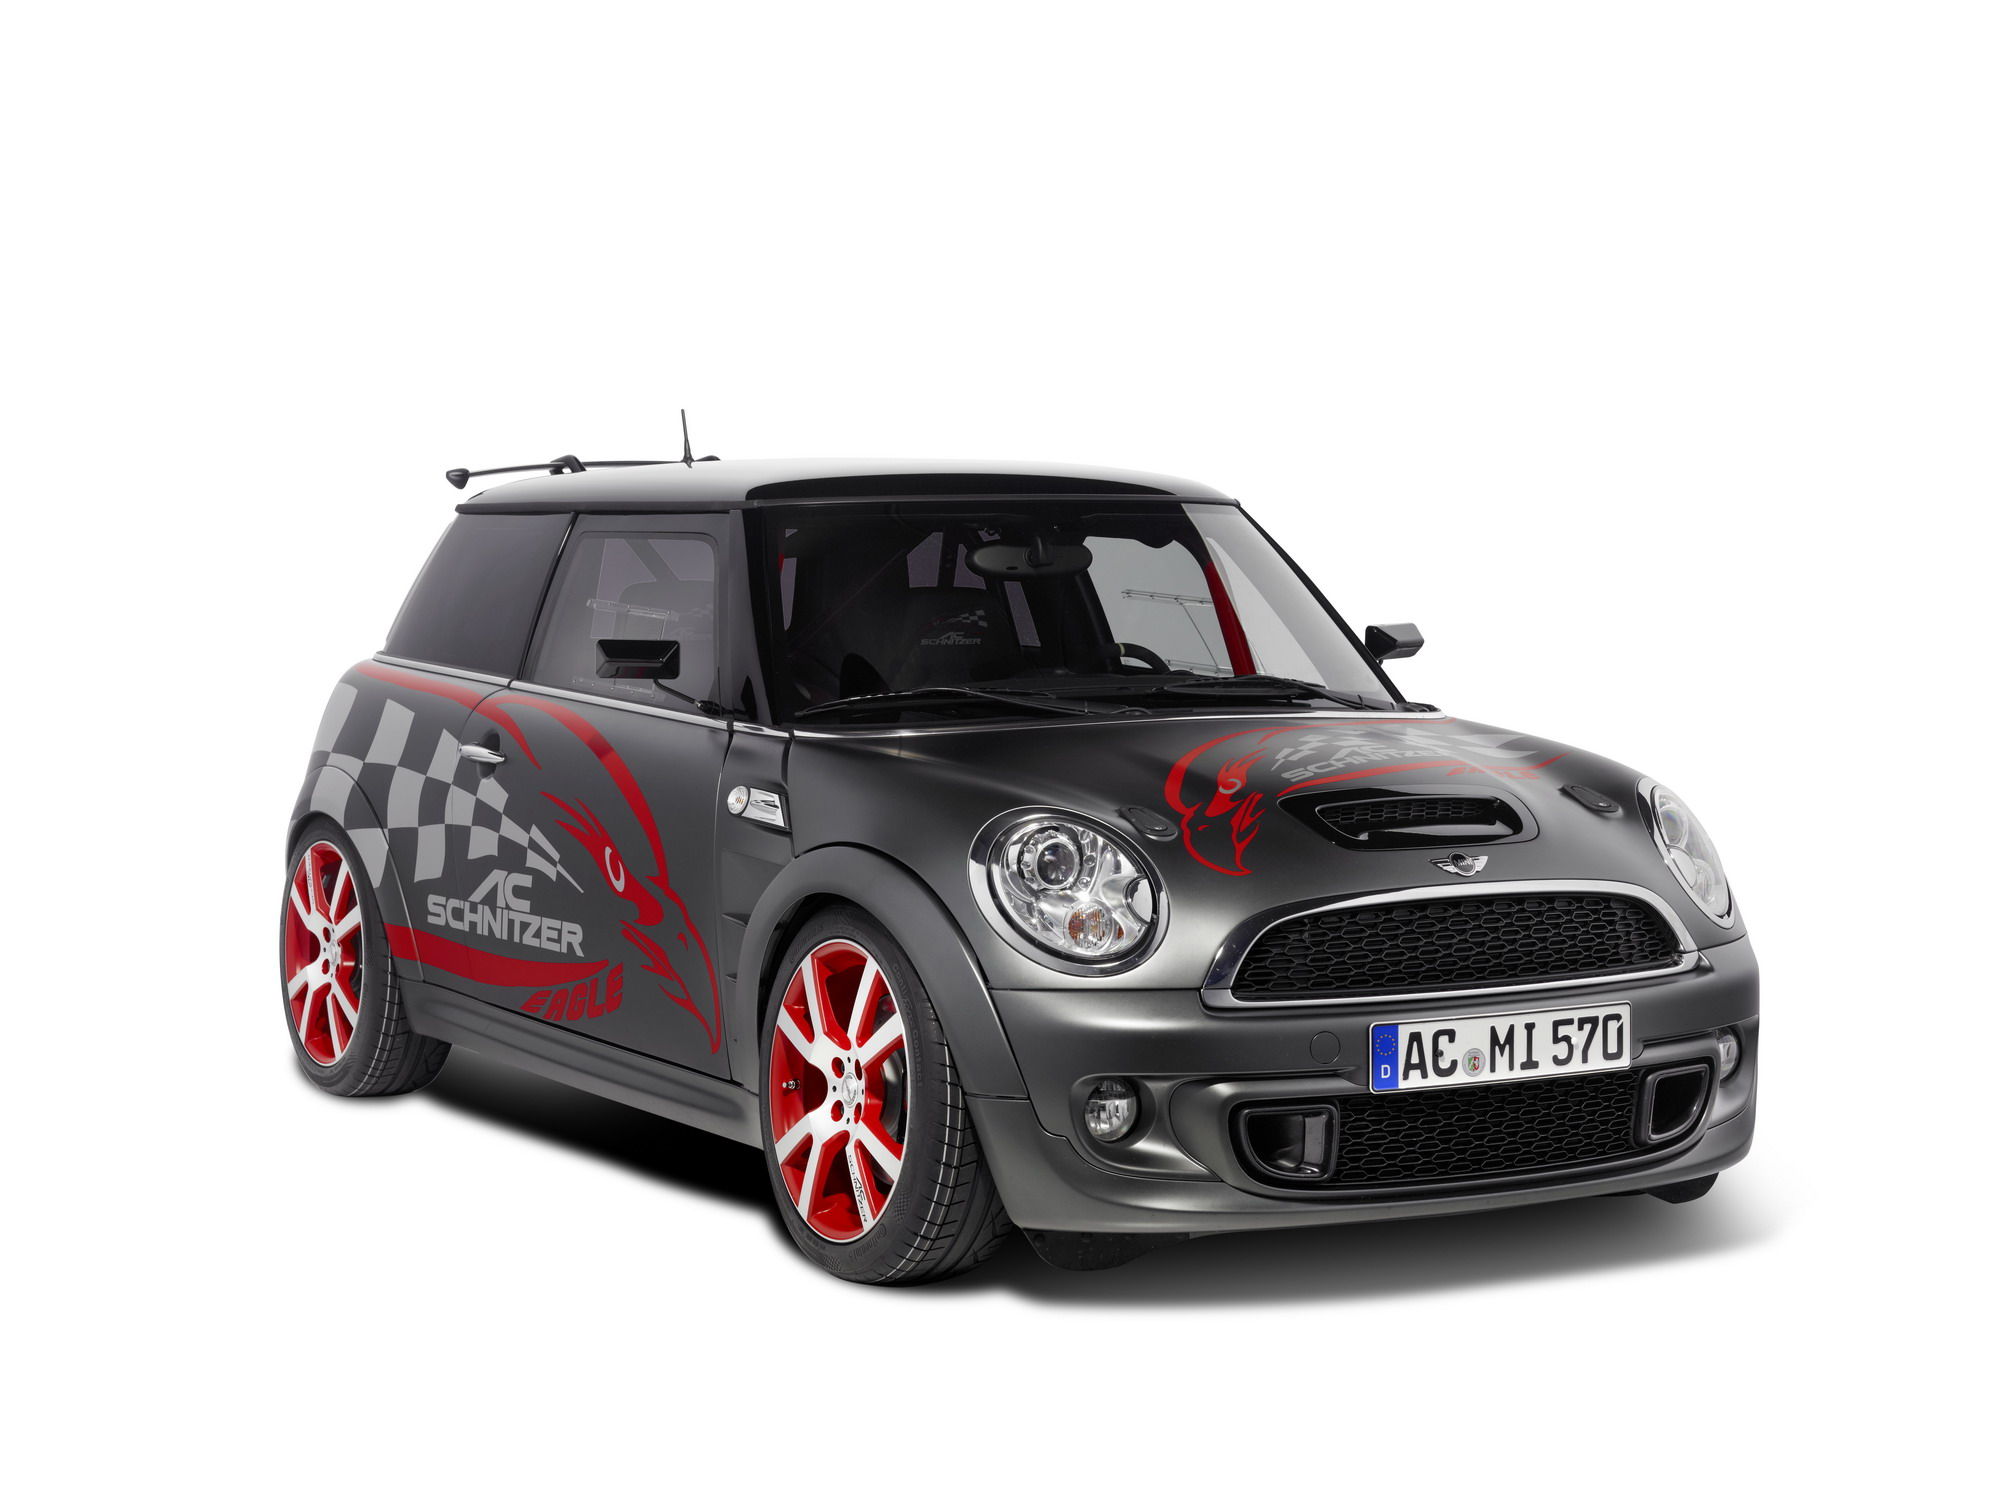 2011 Mini Jcw Eagle By Ac Schnitzer Top Speed